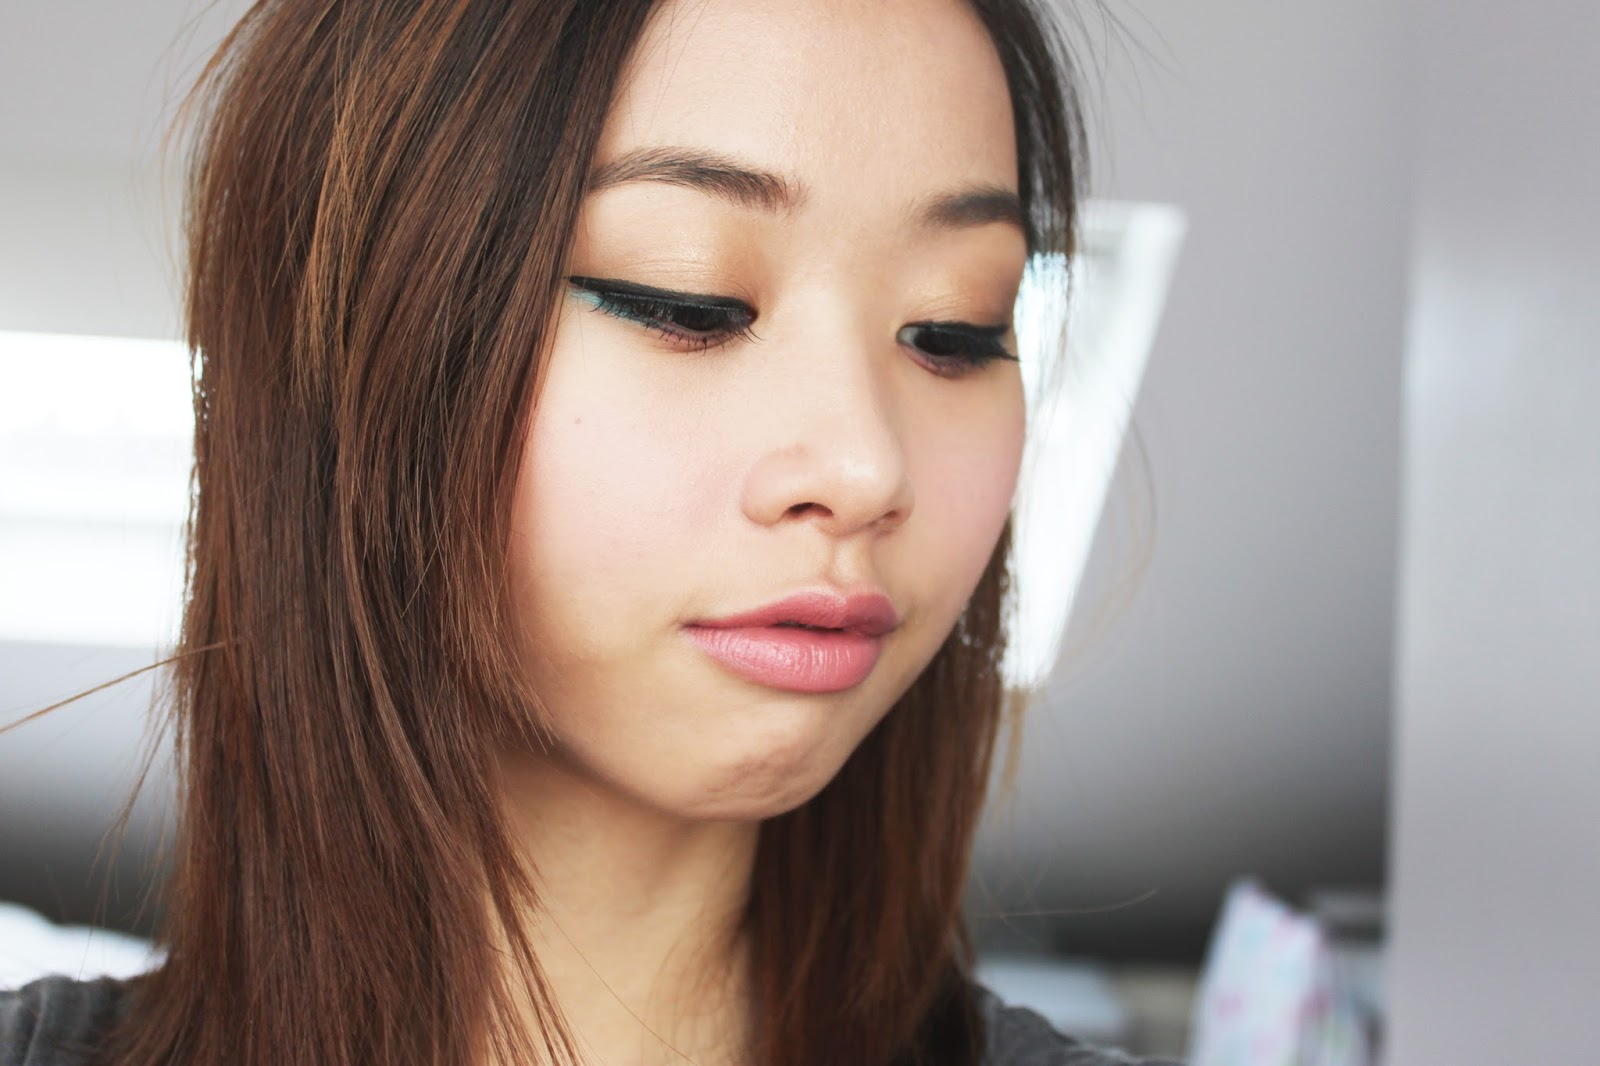 Park Bom Inspired Make Up From Come Back Home Mv The Beauty Show